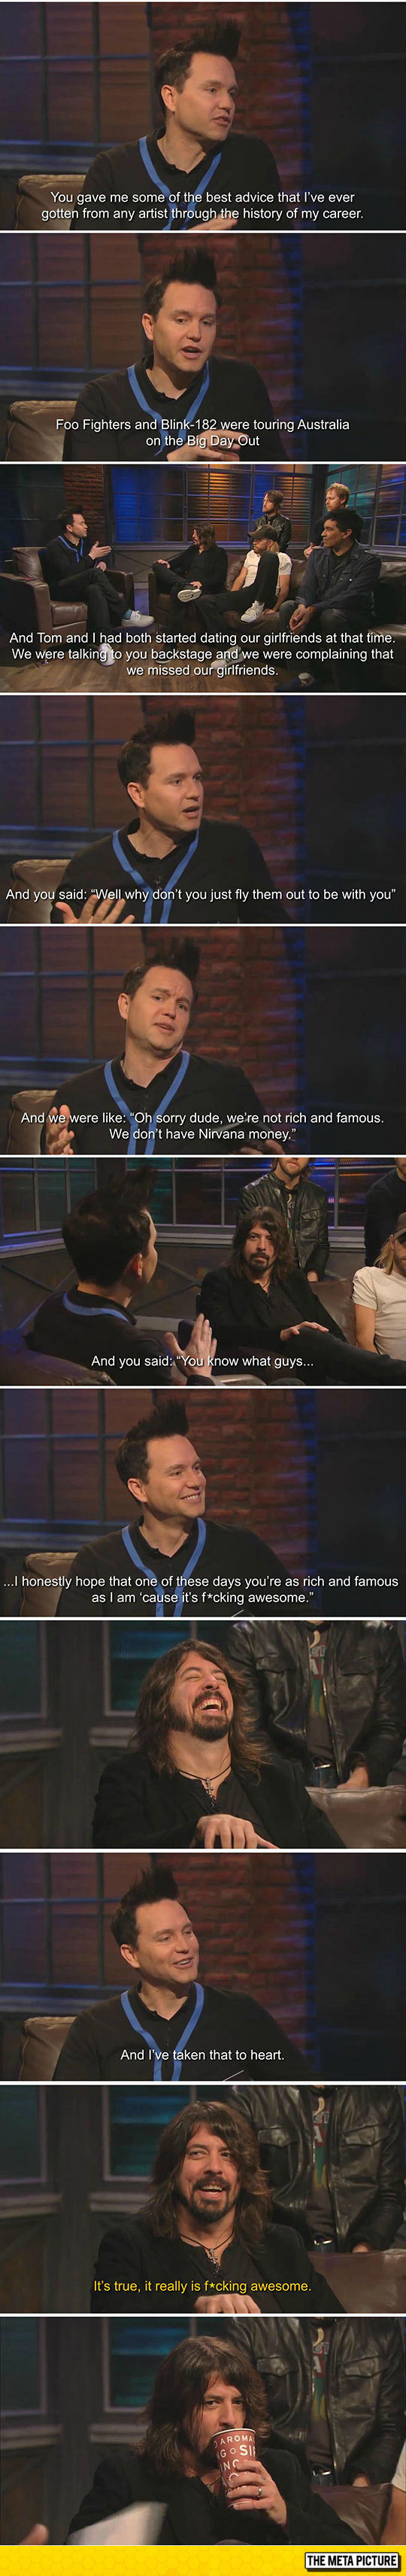 Life Advice From Dave Grohl